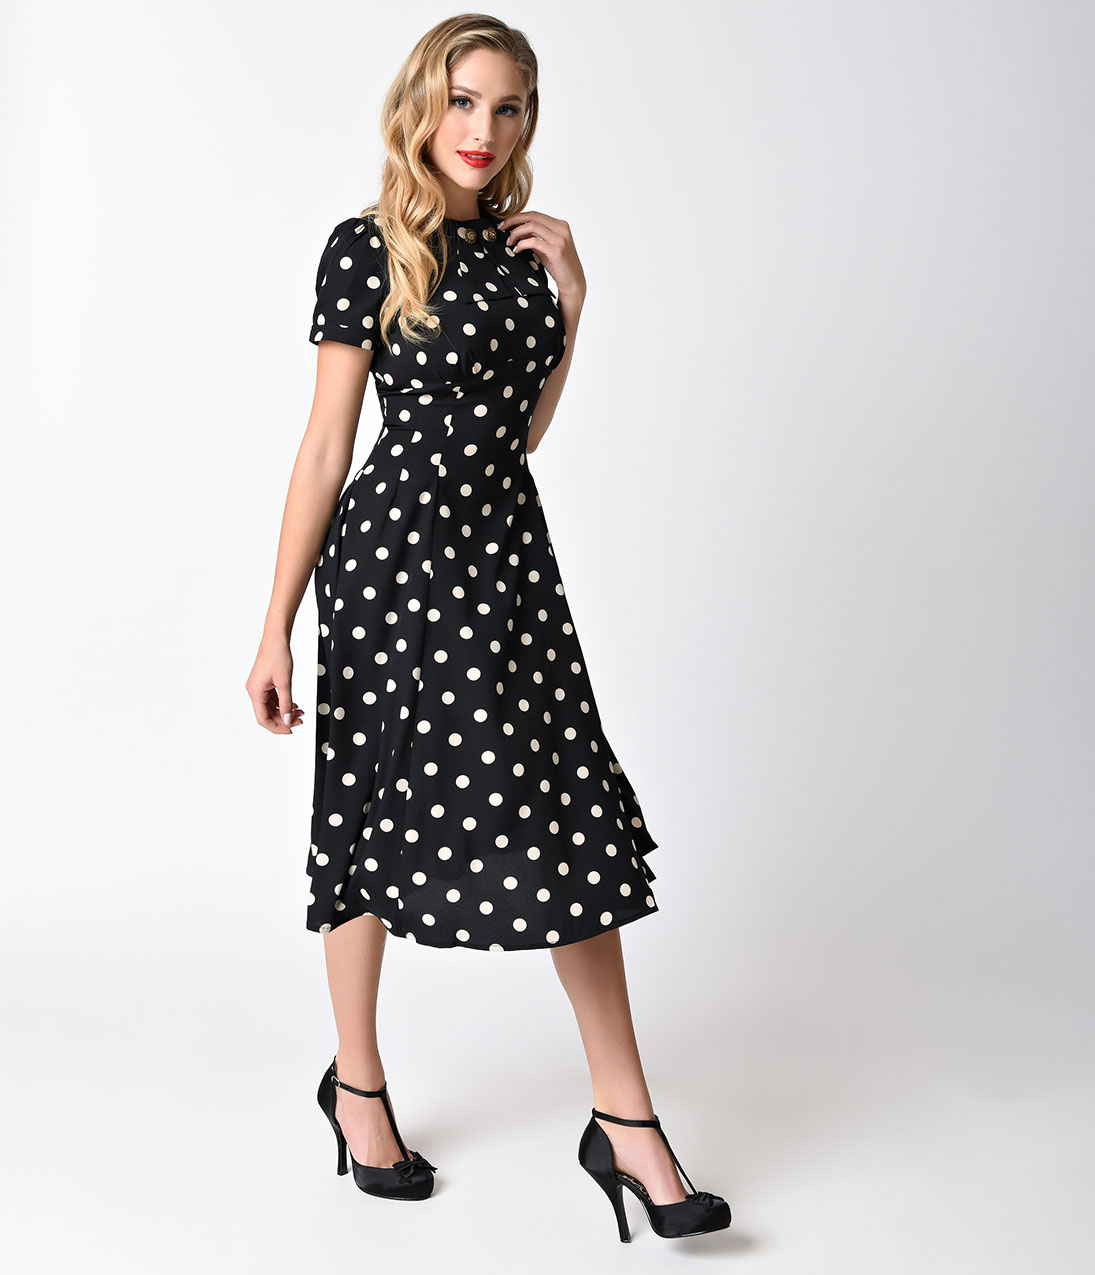 1940s style dresses and clothing polka dot madden swing dress size xl  $72.00 PJOZPMV